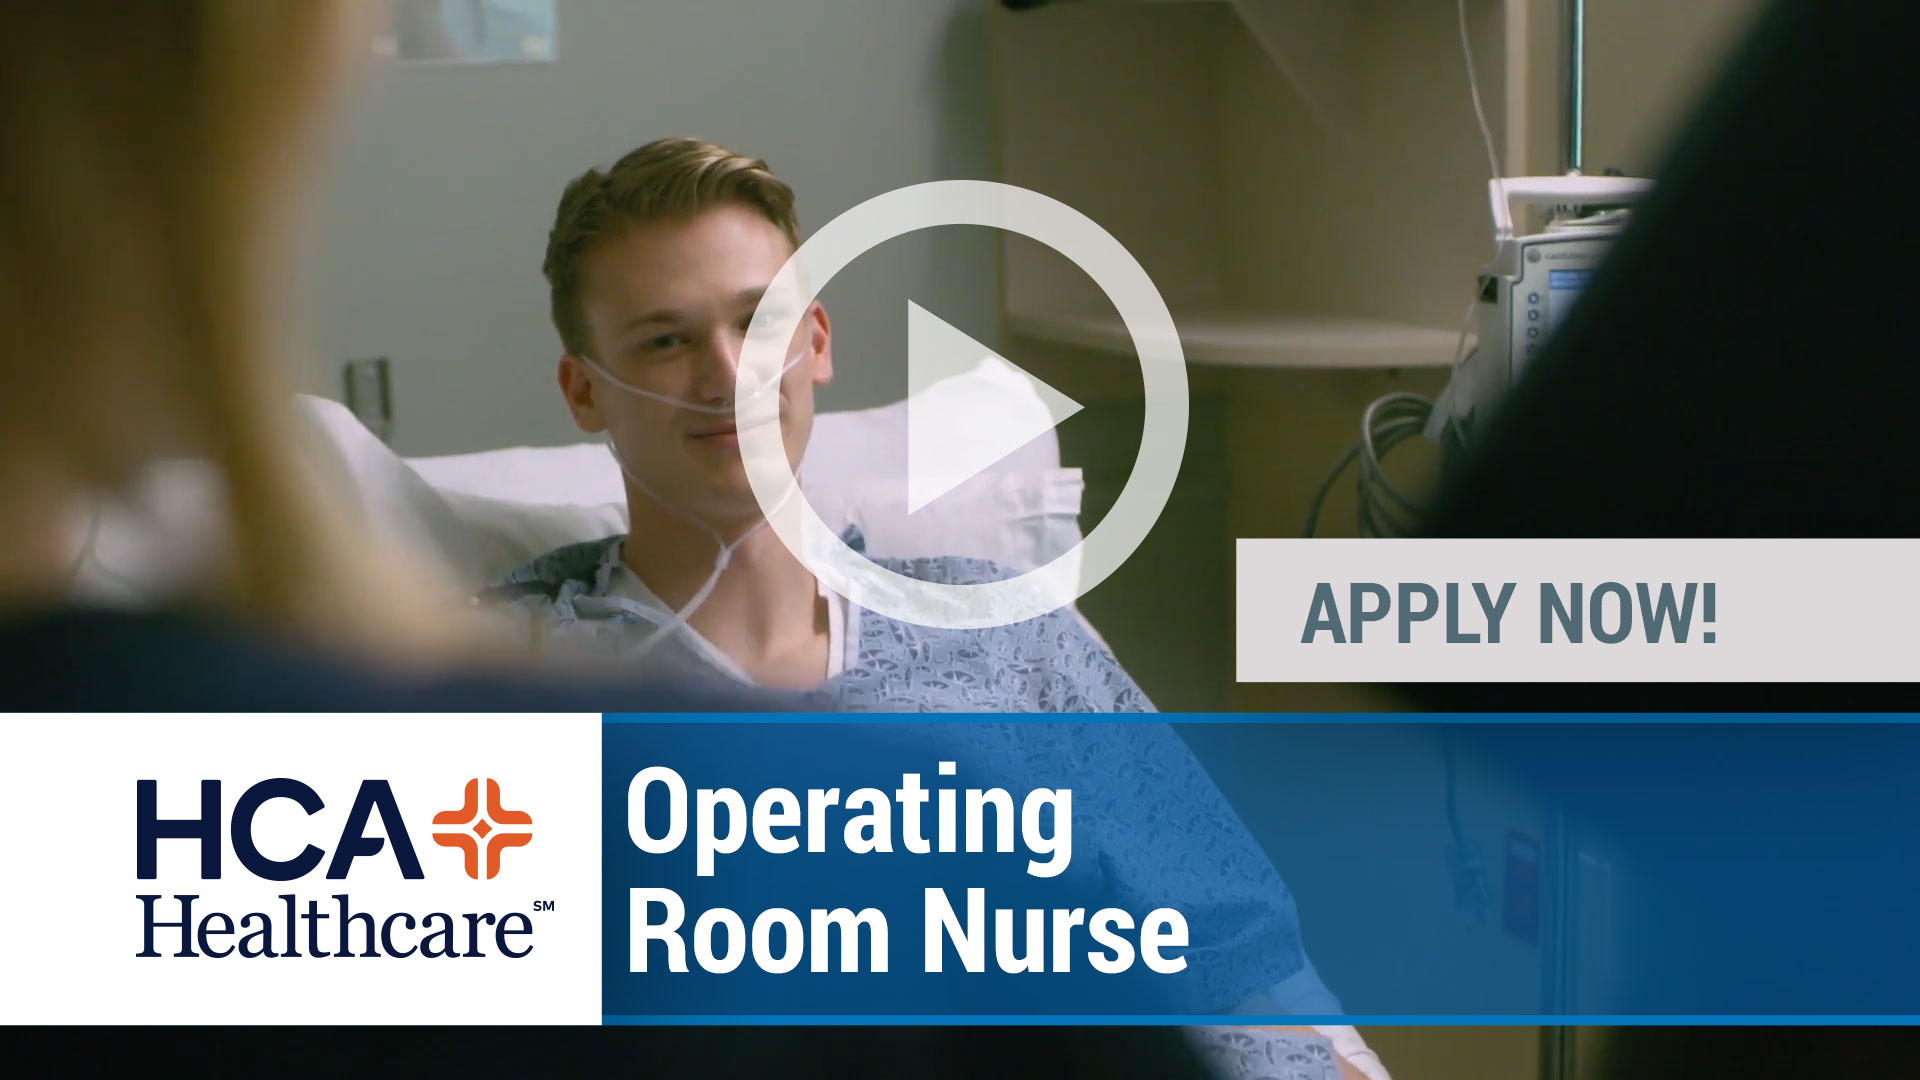 Watch our careers video for available job opening Operating Room Nurse in Kingwood, Texas